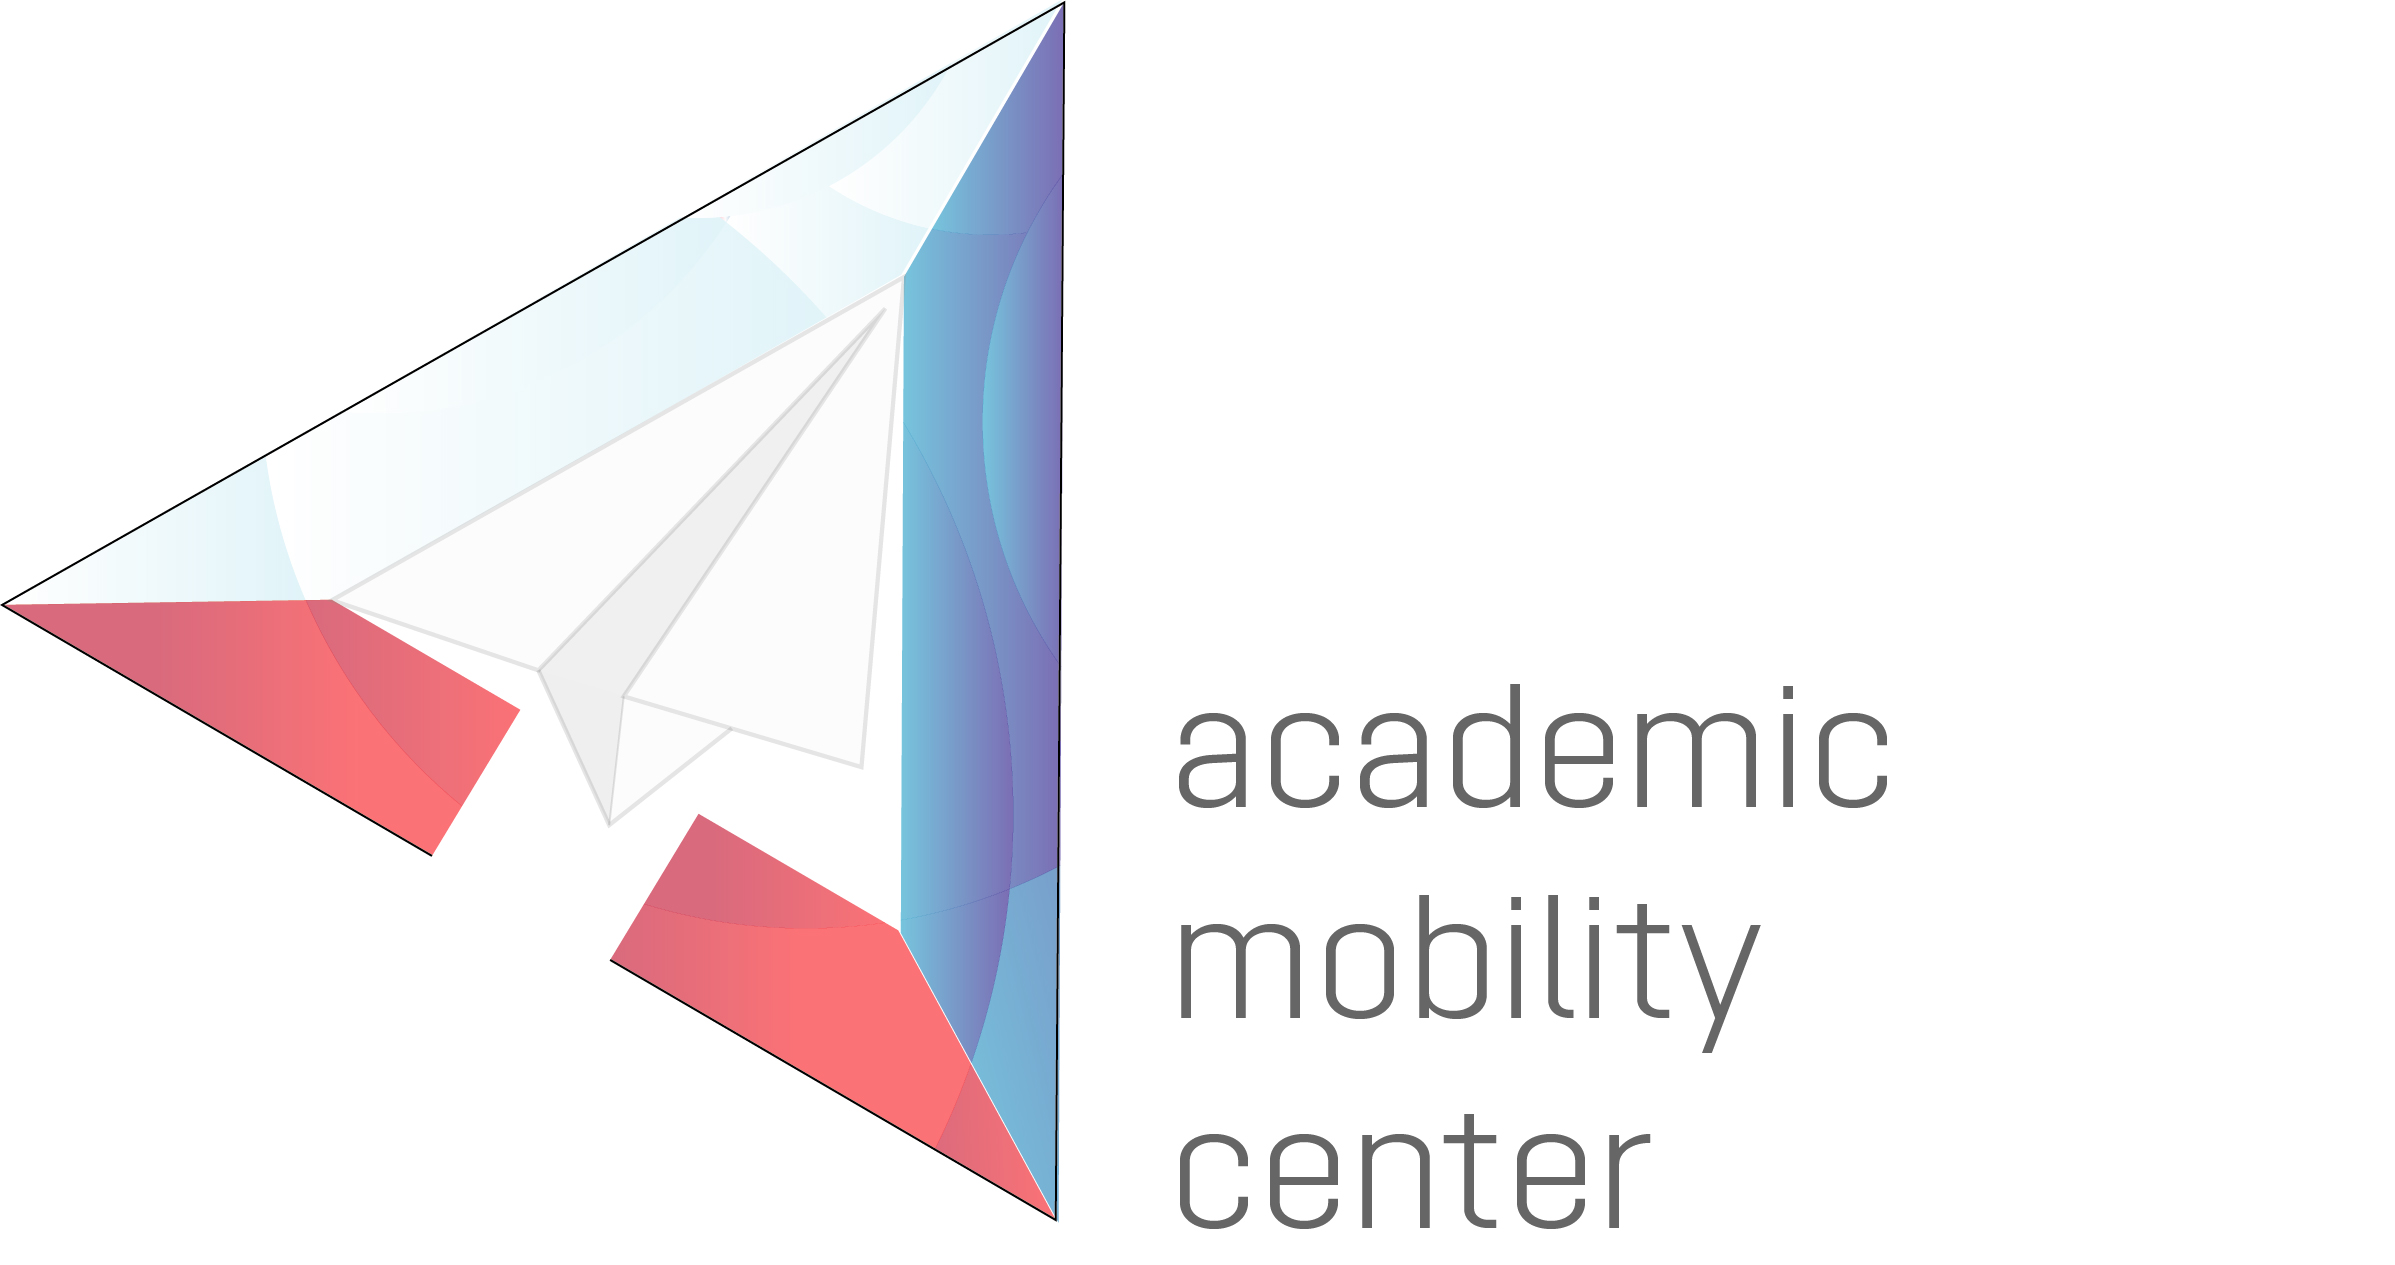 academicmobilitycenter